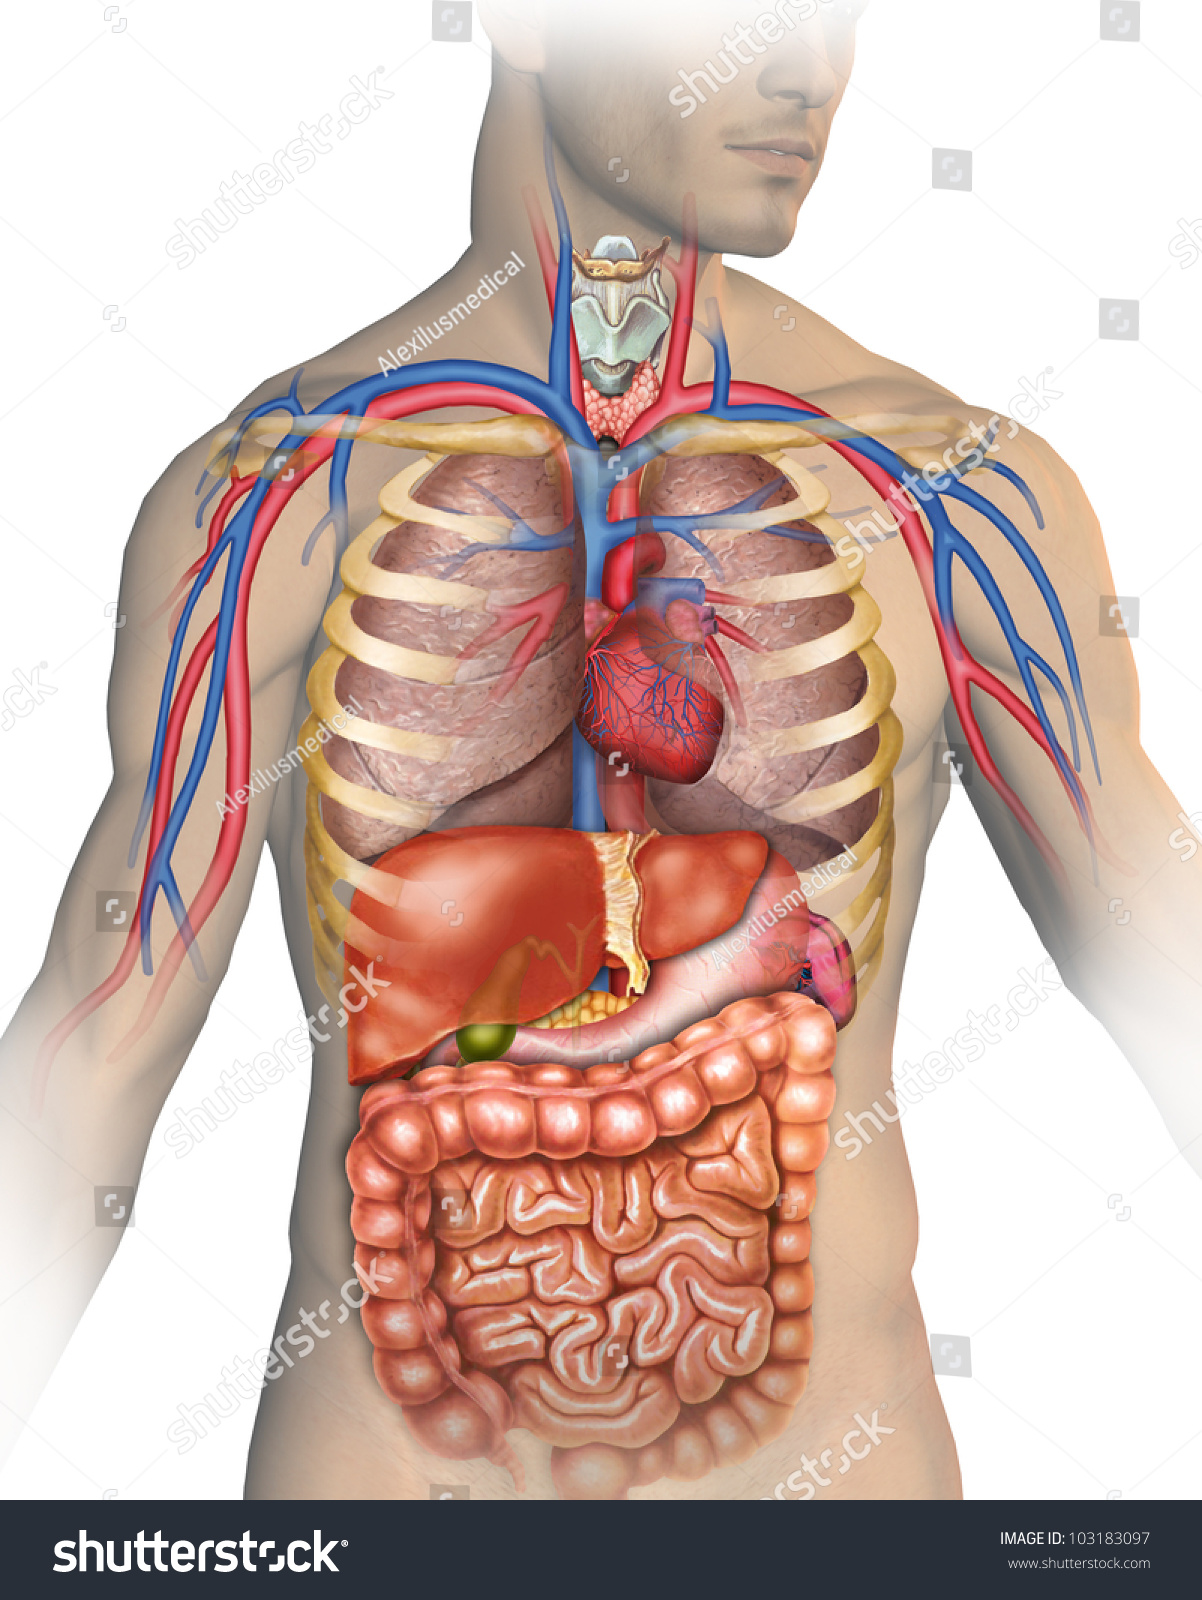 About Human Body Antomy Facts And Functions Science Activity